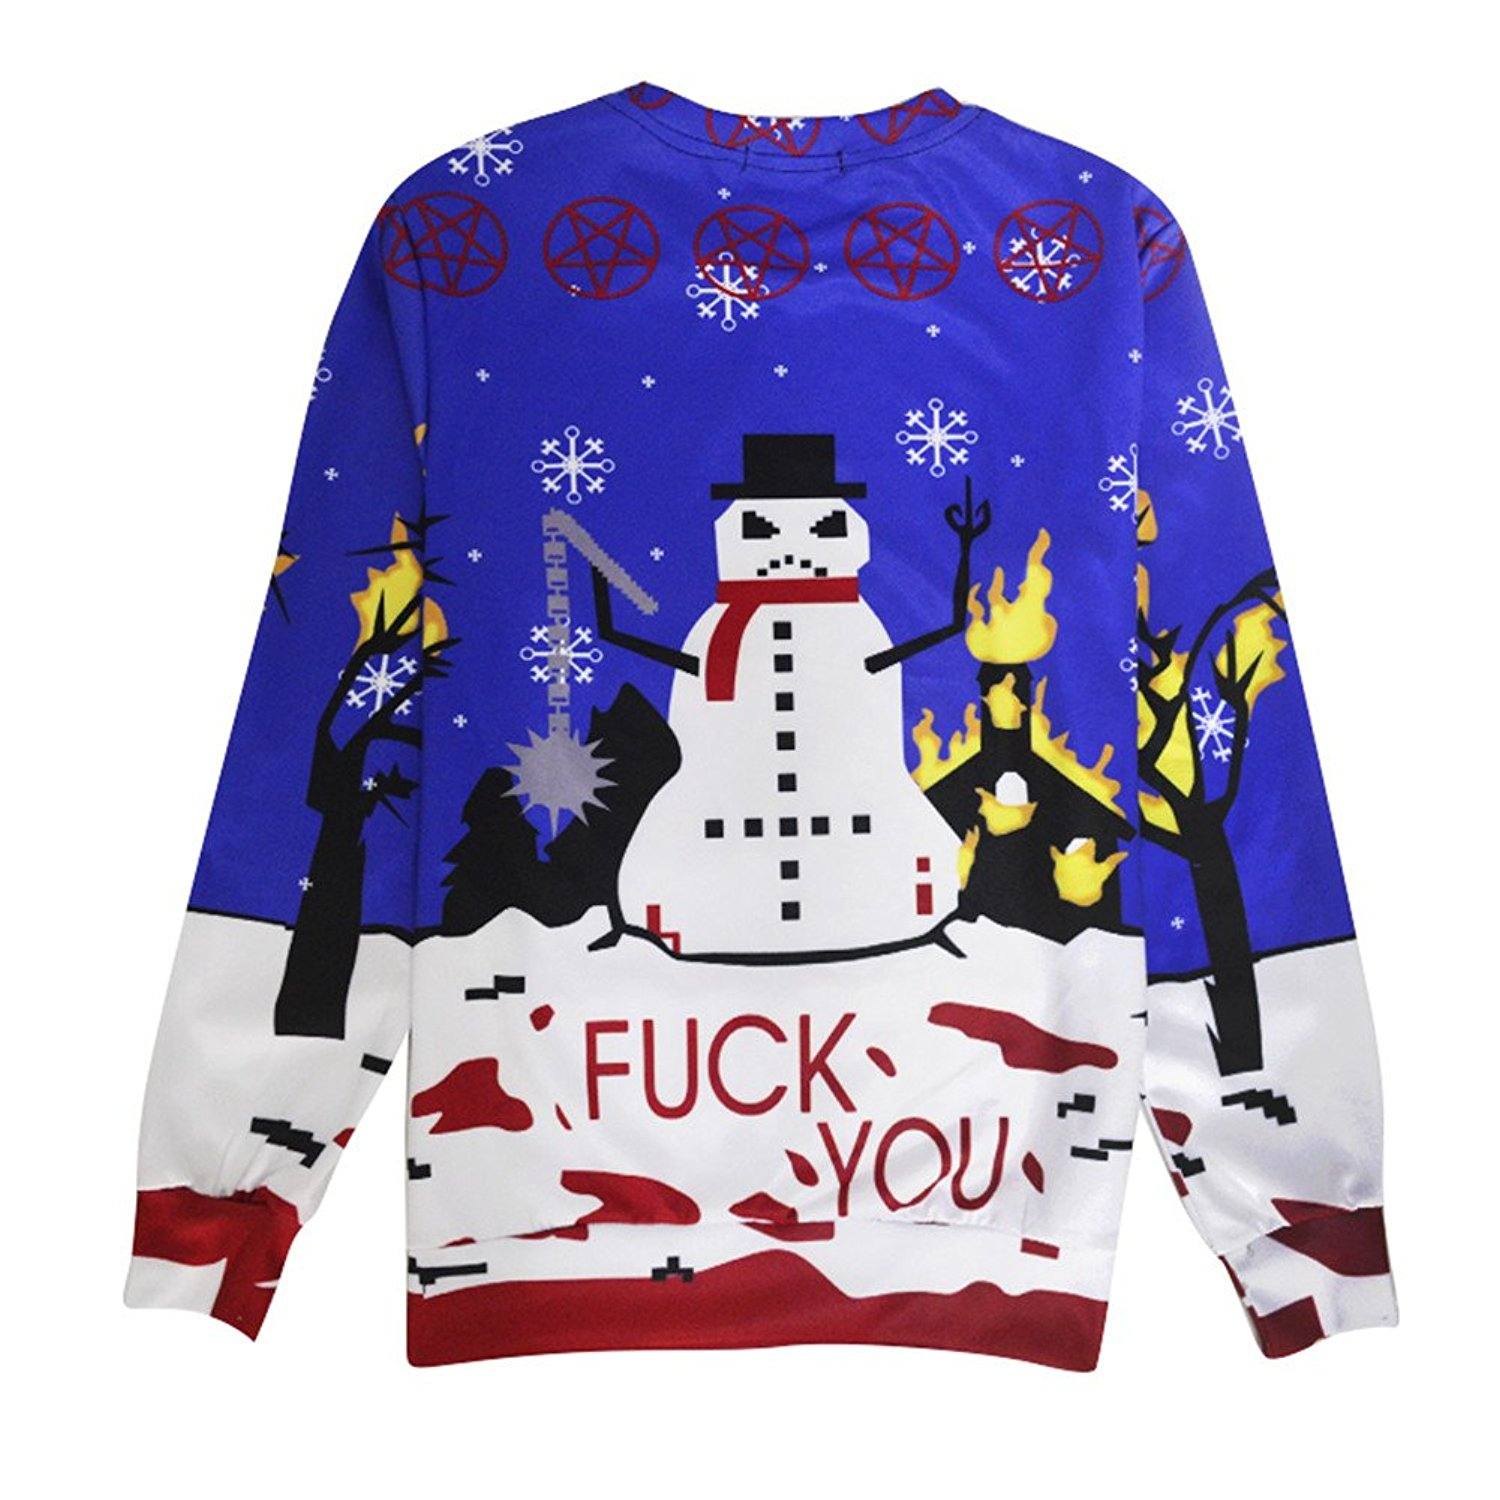 ugly christmas sweater with snowman and text stating fuck - Offensive Ugly Christmas Sweater